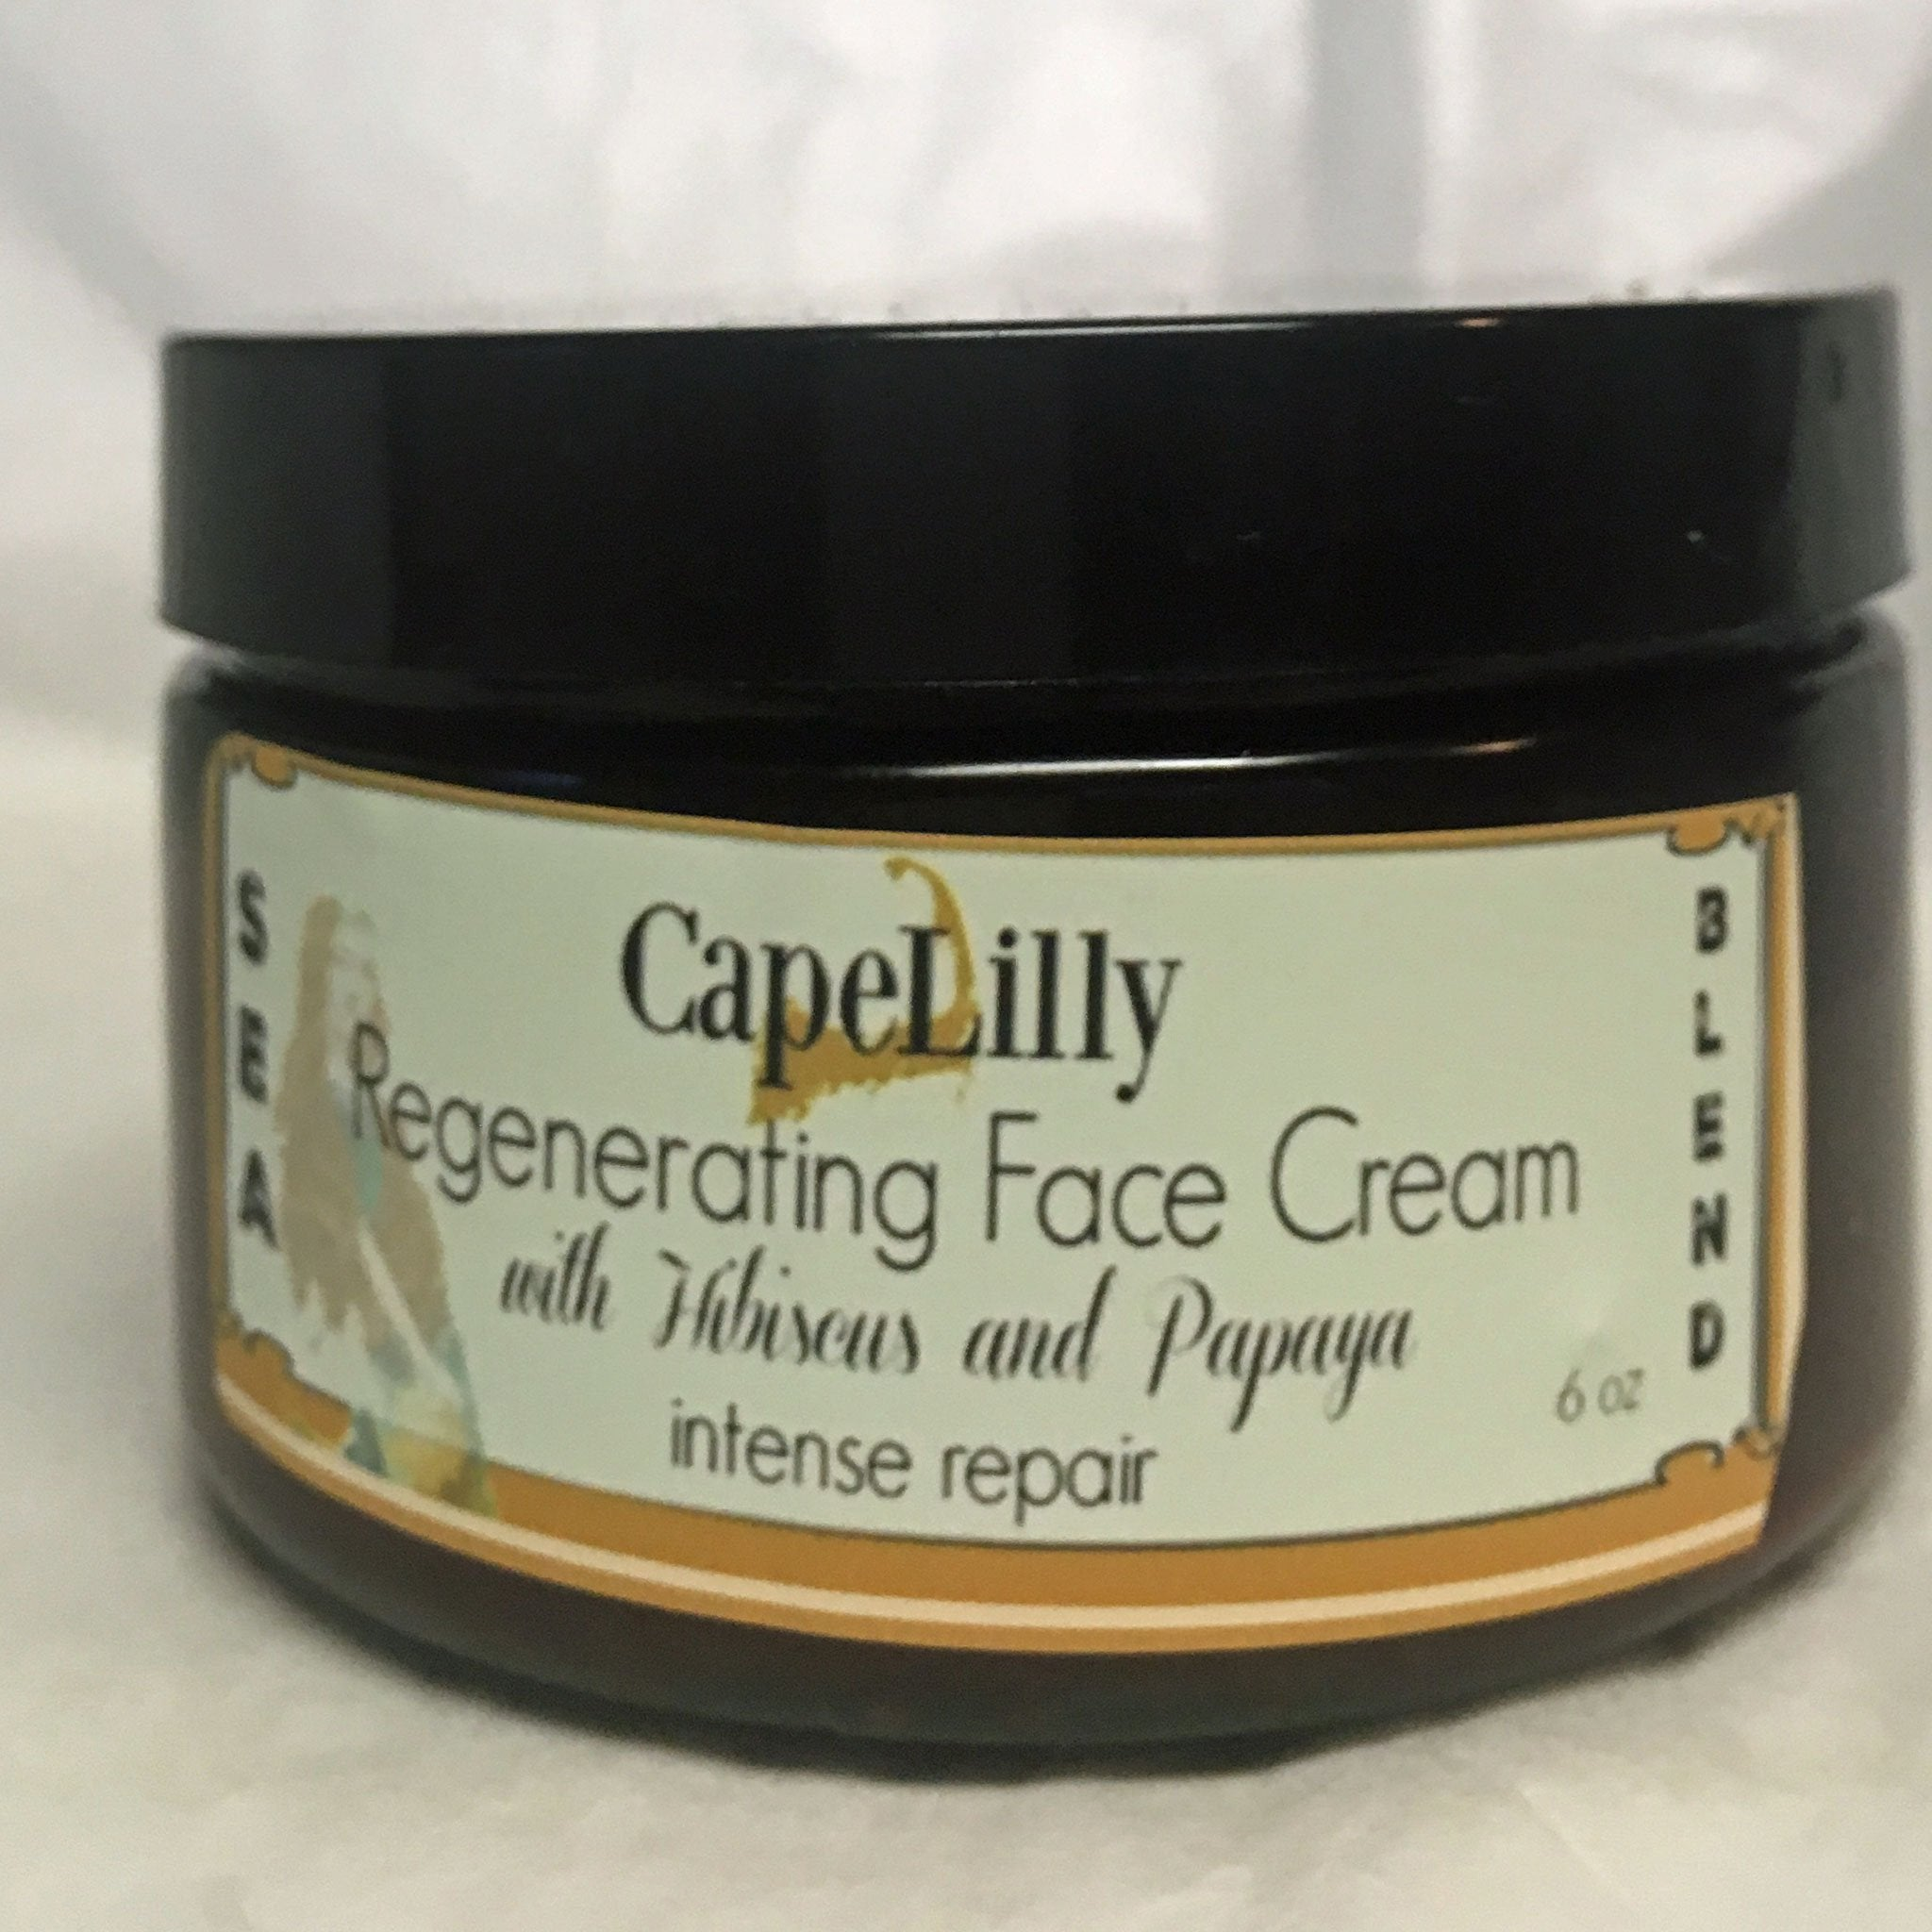 Regenerating Face Cream with Papaya extract